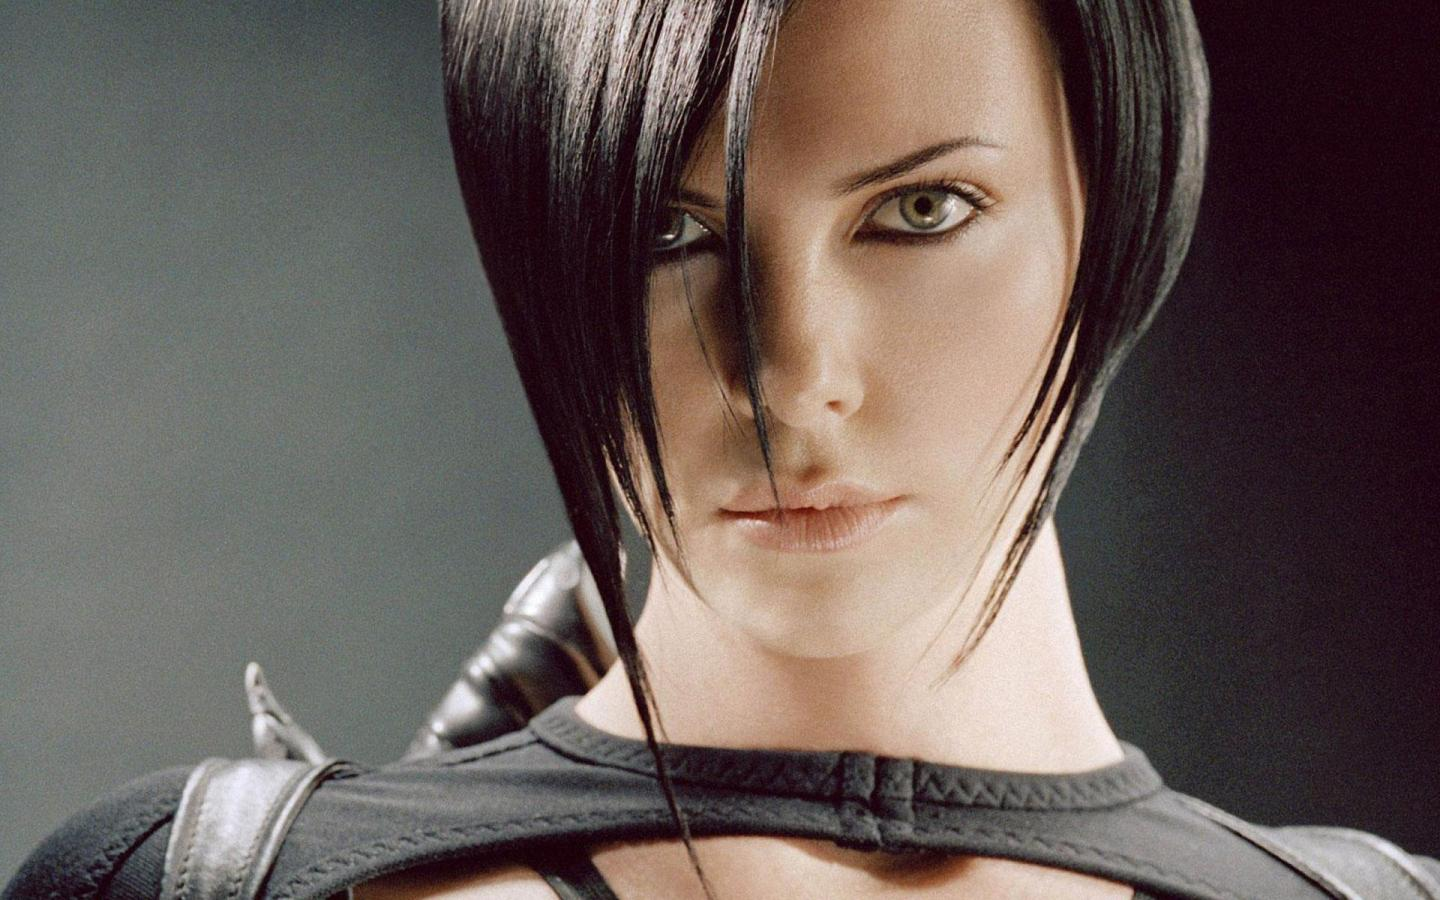 1440x900 - Charlize Theron Wallpapers 15